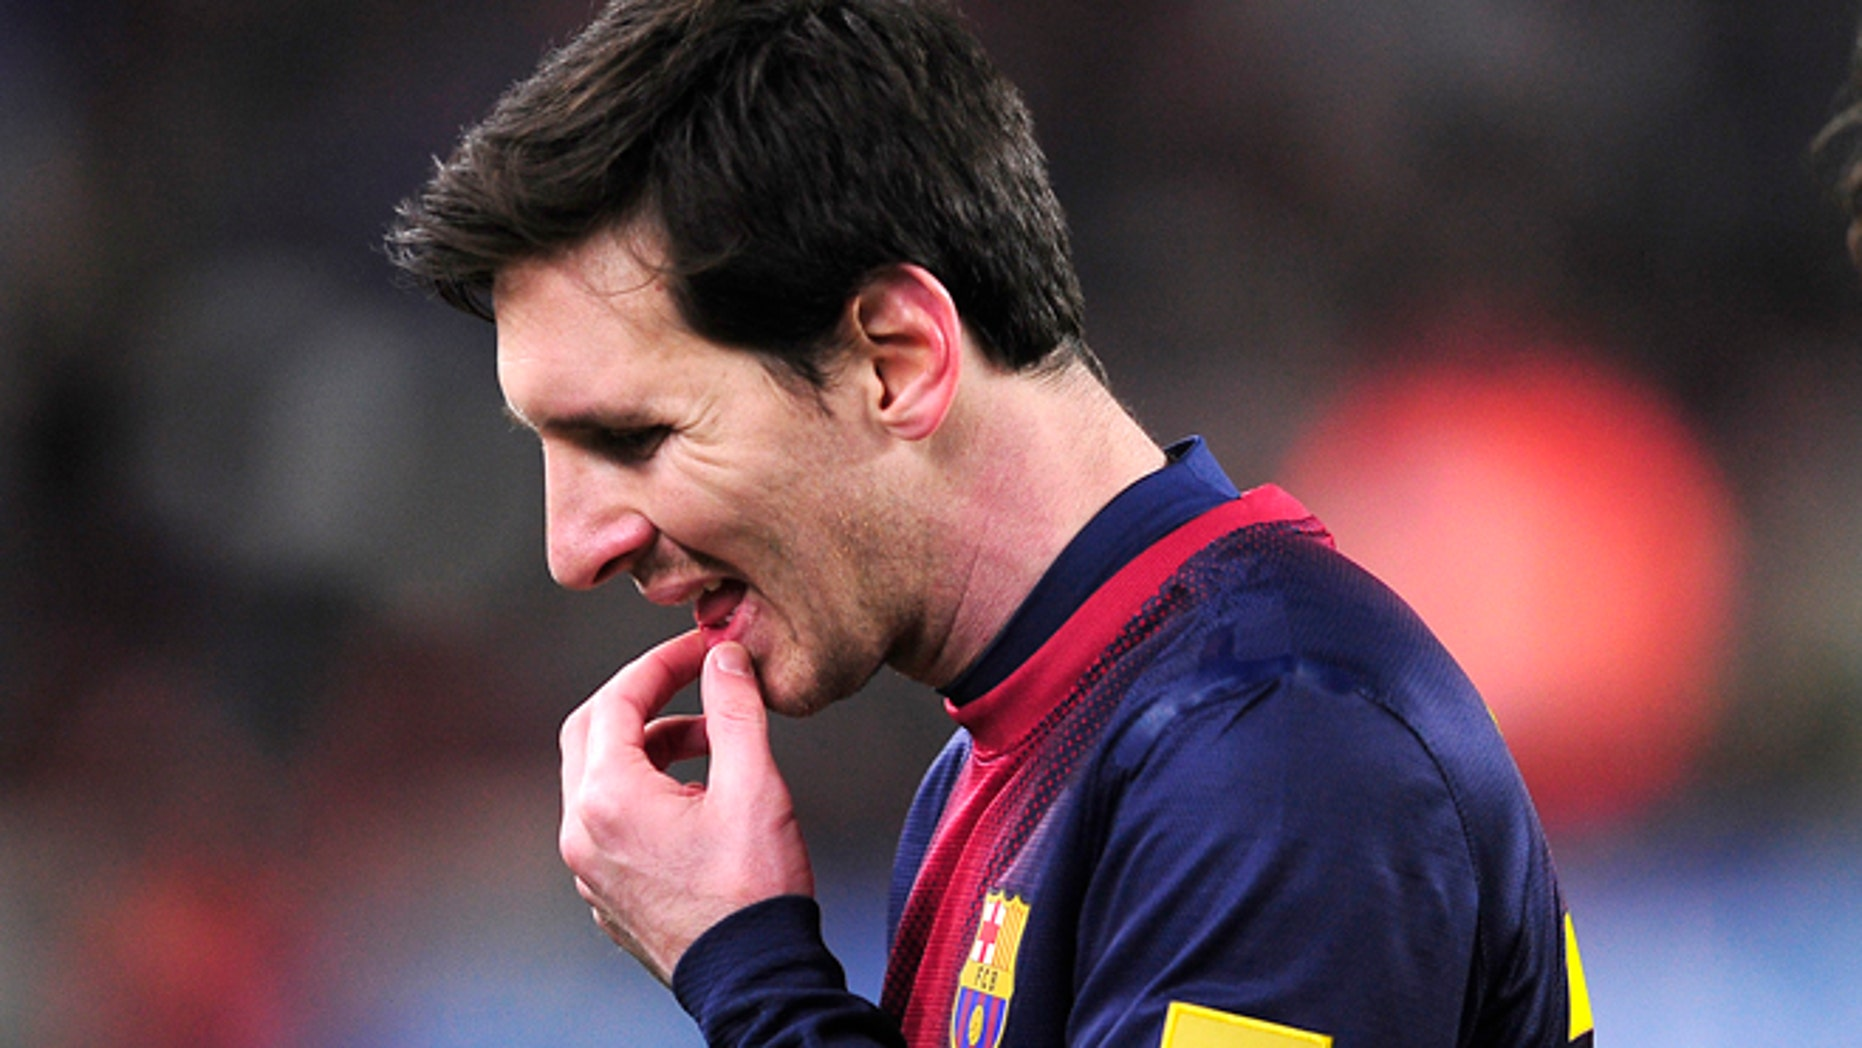 FILE - In this Feb. 26, 2013 file photo, Barcelona's Lionel Messi from Argentina reacts after losing the Copa del Rey soccer match between FC Barcelona and Real Madrid at the Camp Nou stadium in Barcelona, Spain. A state prosecutor for the northeastern region of Catalonia has lodged on Wednesday June 12, 2013, a lawsuit against Lionel Messi for fraud in unpaid income tax amounting to euro4 million ($5.3 million). The complaint, signed by prosecutor Raquel Amado, has been submitted for trial at the courthouse in Gava, the upscale Barcelona district where the Argentina forward lives. The document, presented to the court on Wednesday, brings a lawsuit against Barcelona star Messi and his father, Jorge Horacio Messi.(AP Photo/Manu Fernandez, File)